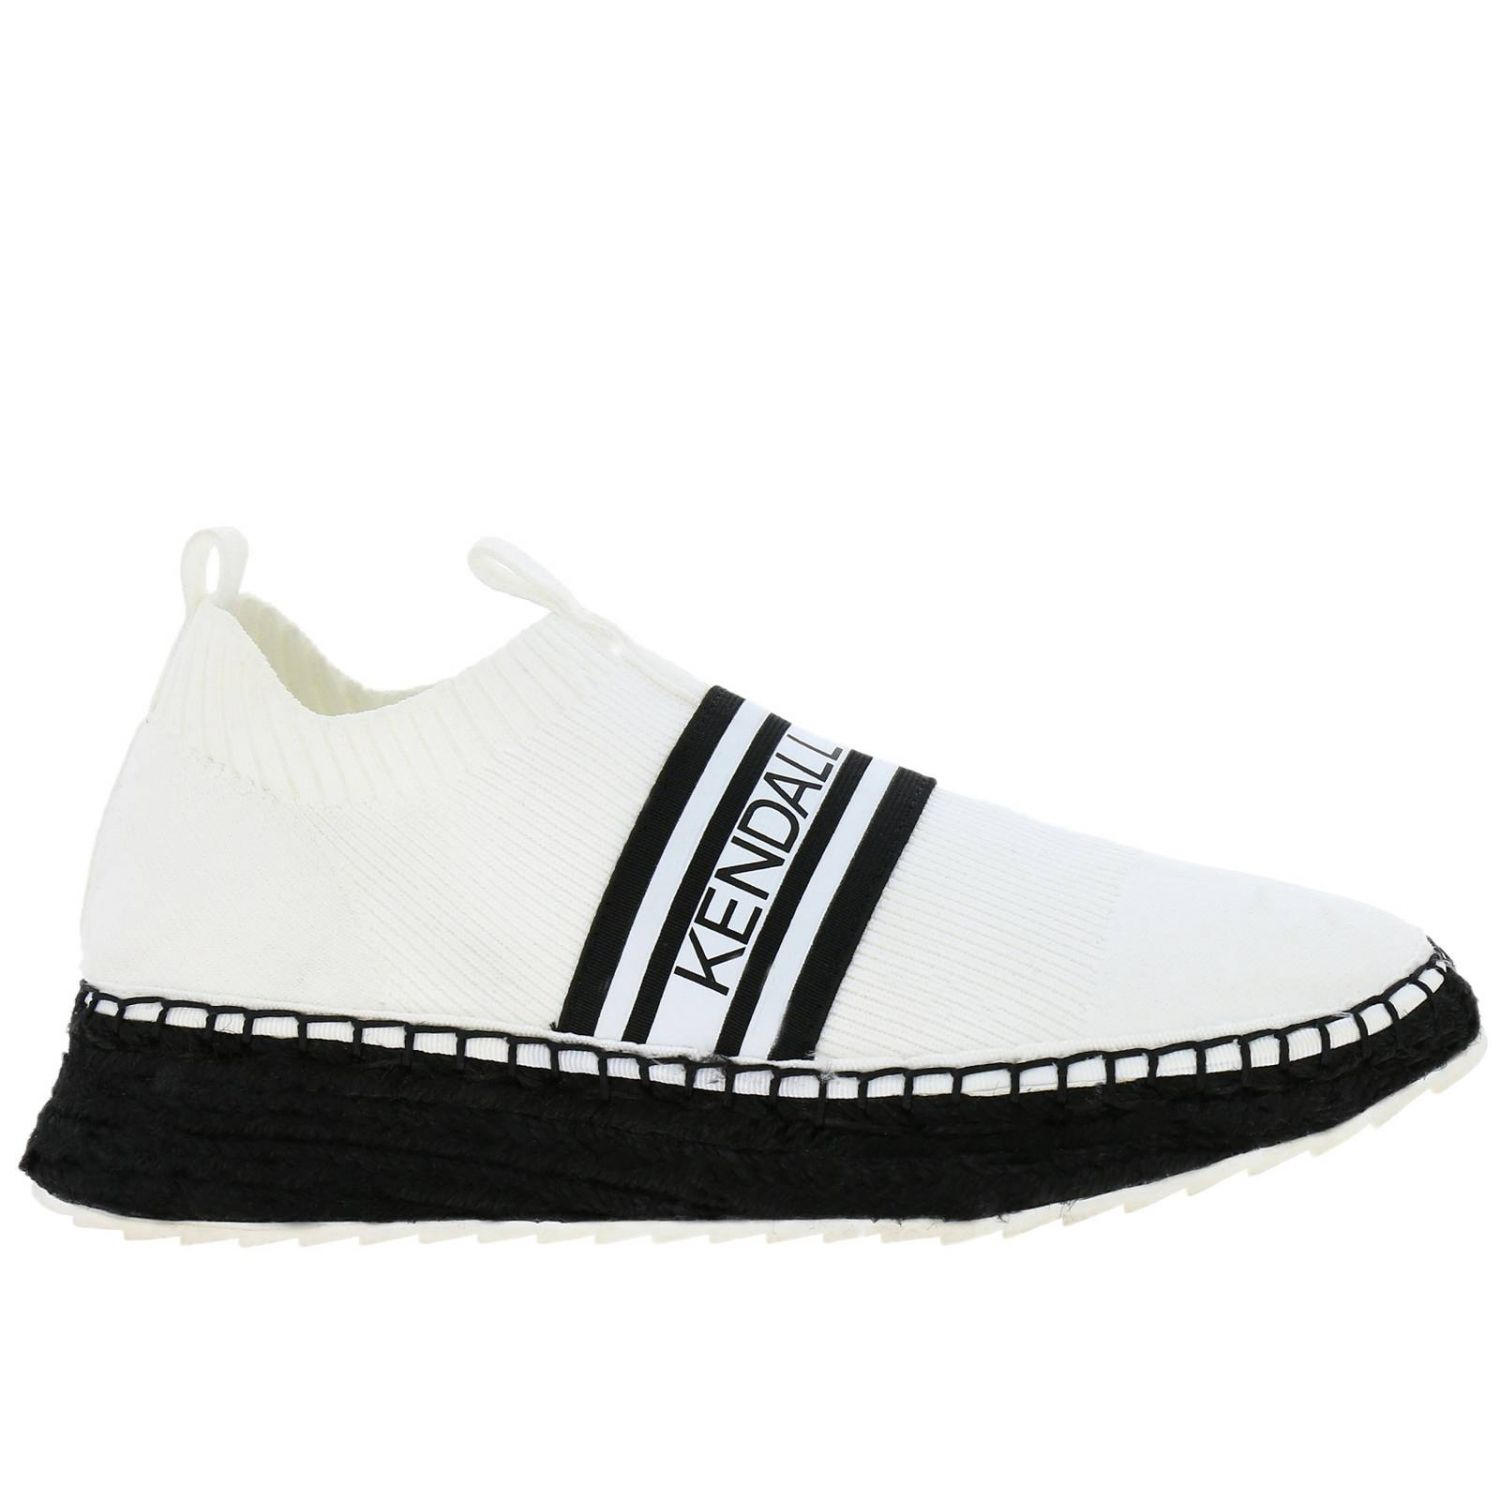 Sneakers KK Jake-B slip on a calza in tessuto stretch con maxi logo Kendall+Kylie bianco 1